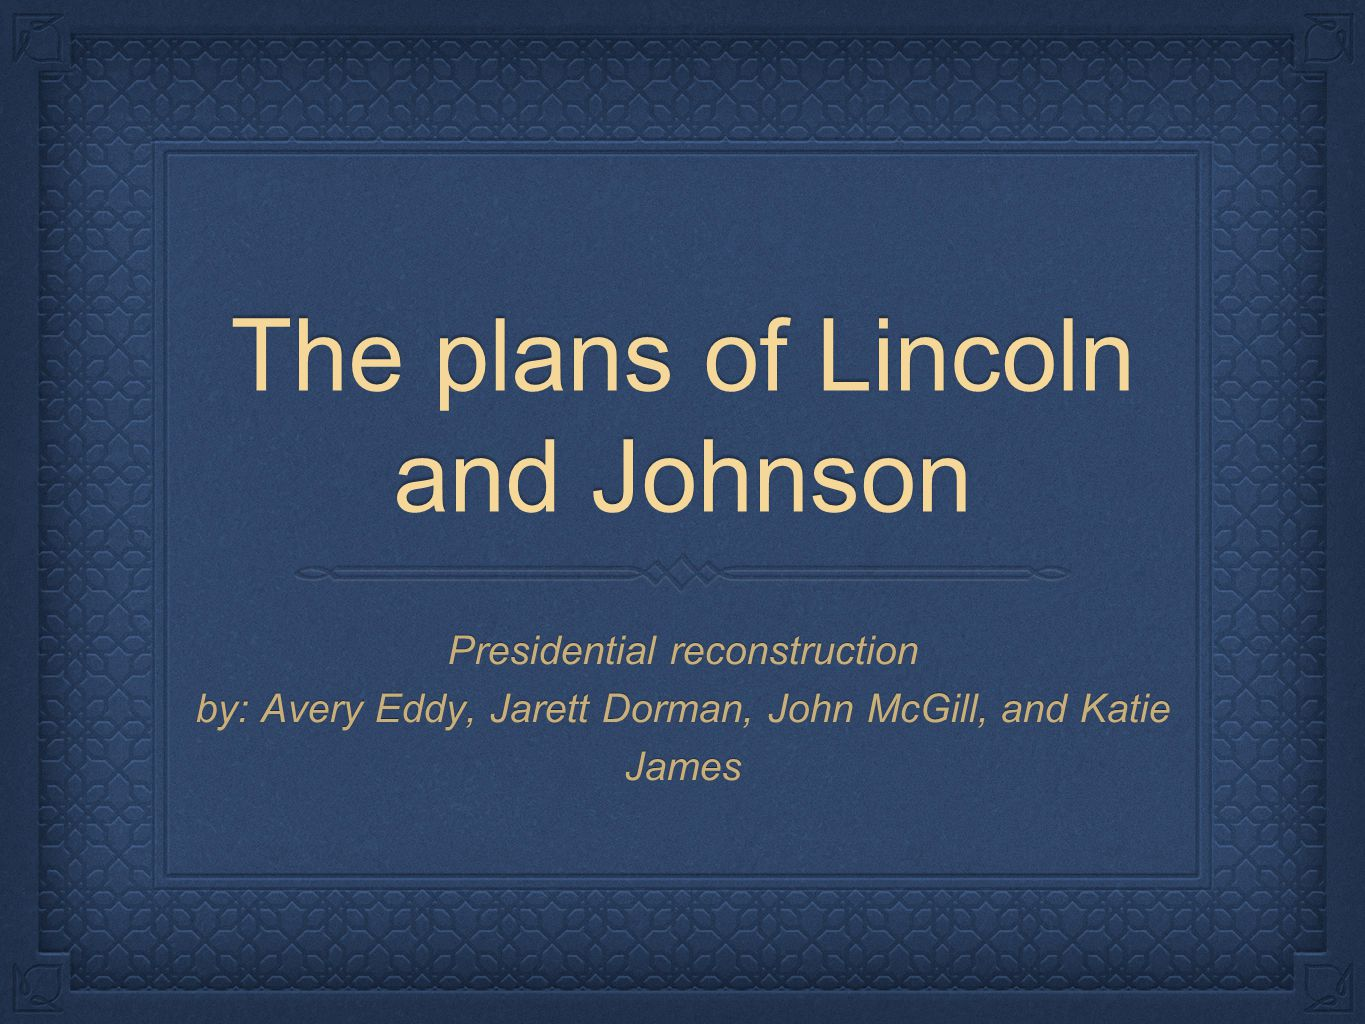 The plans of Lincoln and Johnson Presidential reconstruction by: Avery Eddy, Jarett Dorman, John McGill, and Katie James